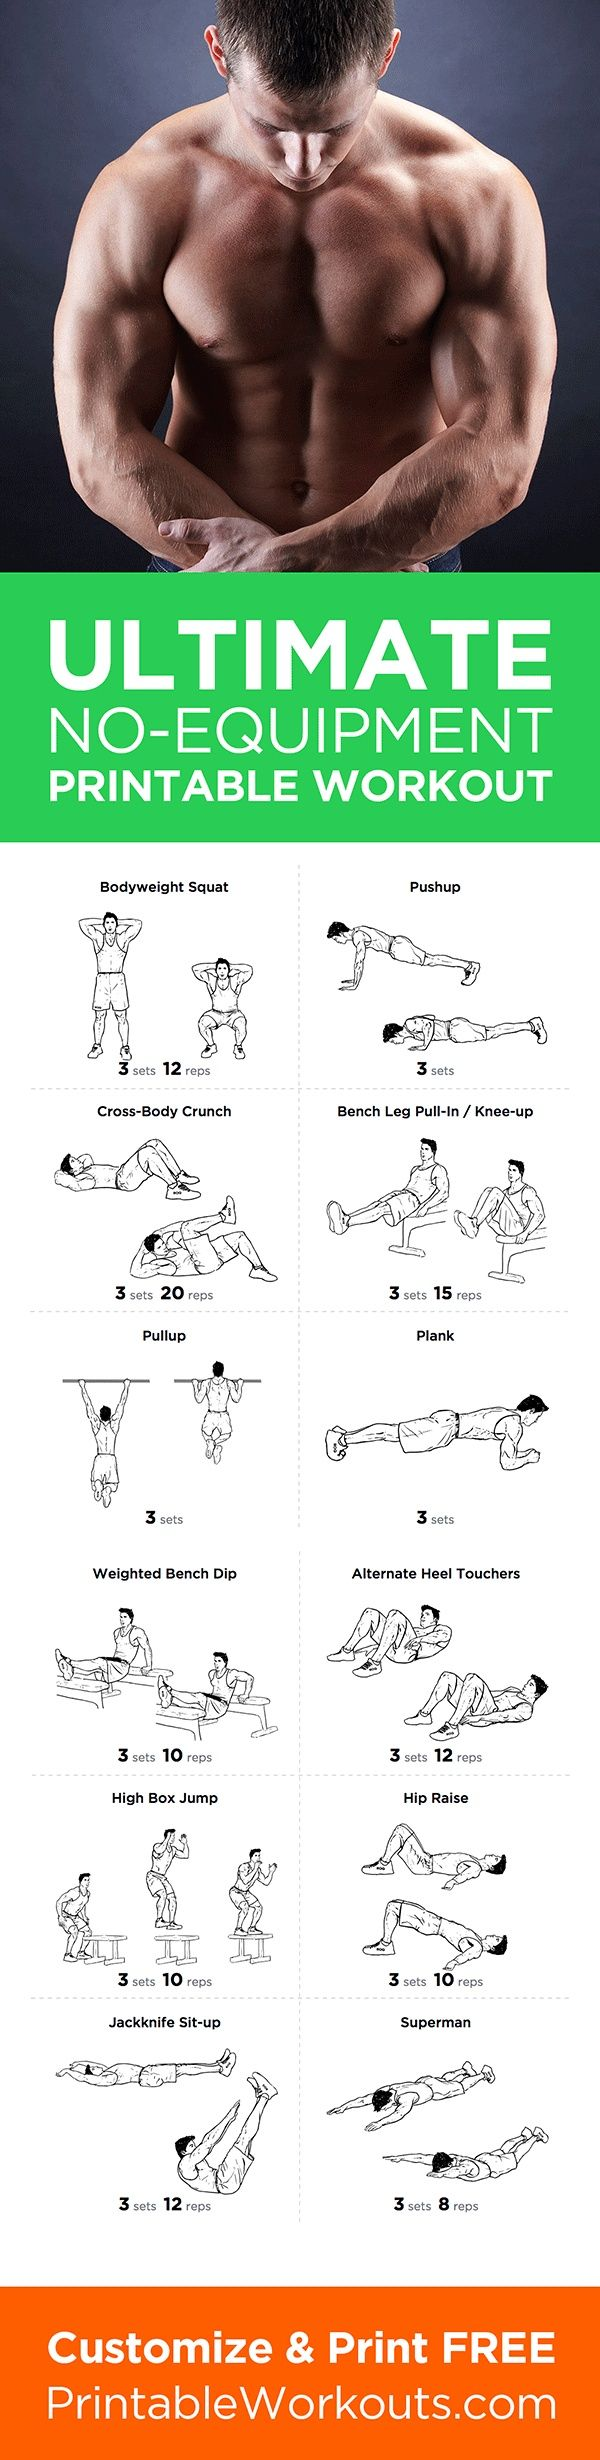 See more here ► https://www.youtube.com/watch?v=0KRTOVZ92_4 Tags: herbs for weight loss, how much weight will i lose calculator, free weight loss program - Try this full body no equipment at-home printable workout routine! Customize & print it at http://p